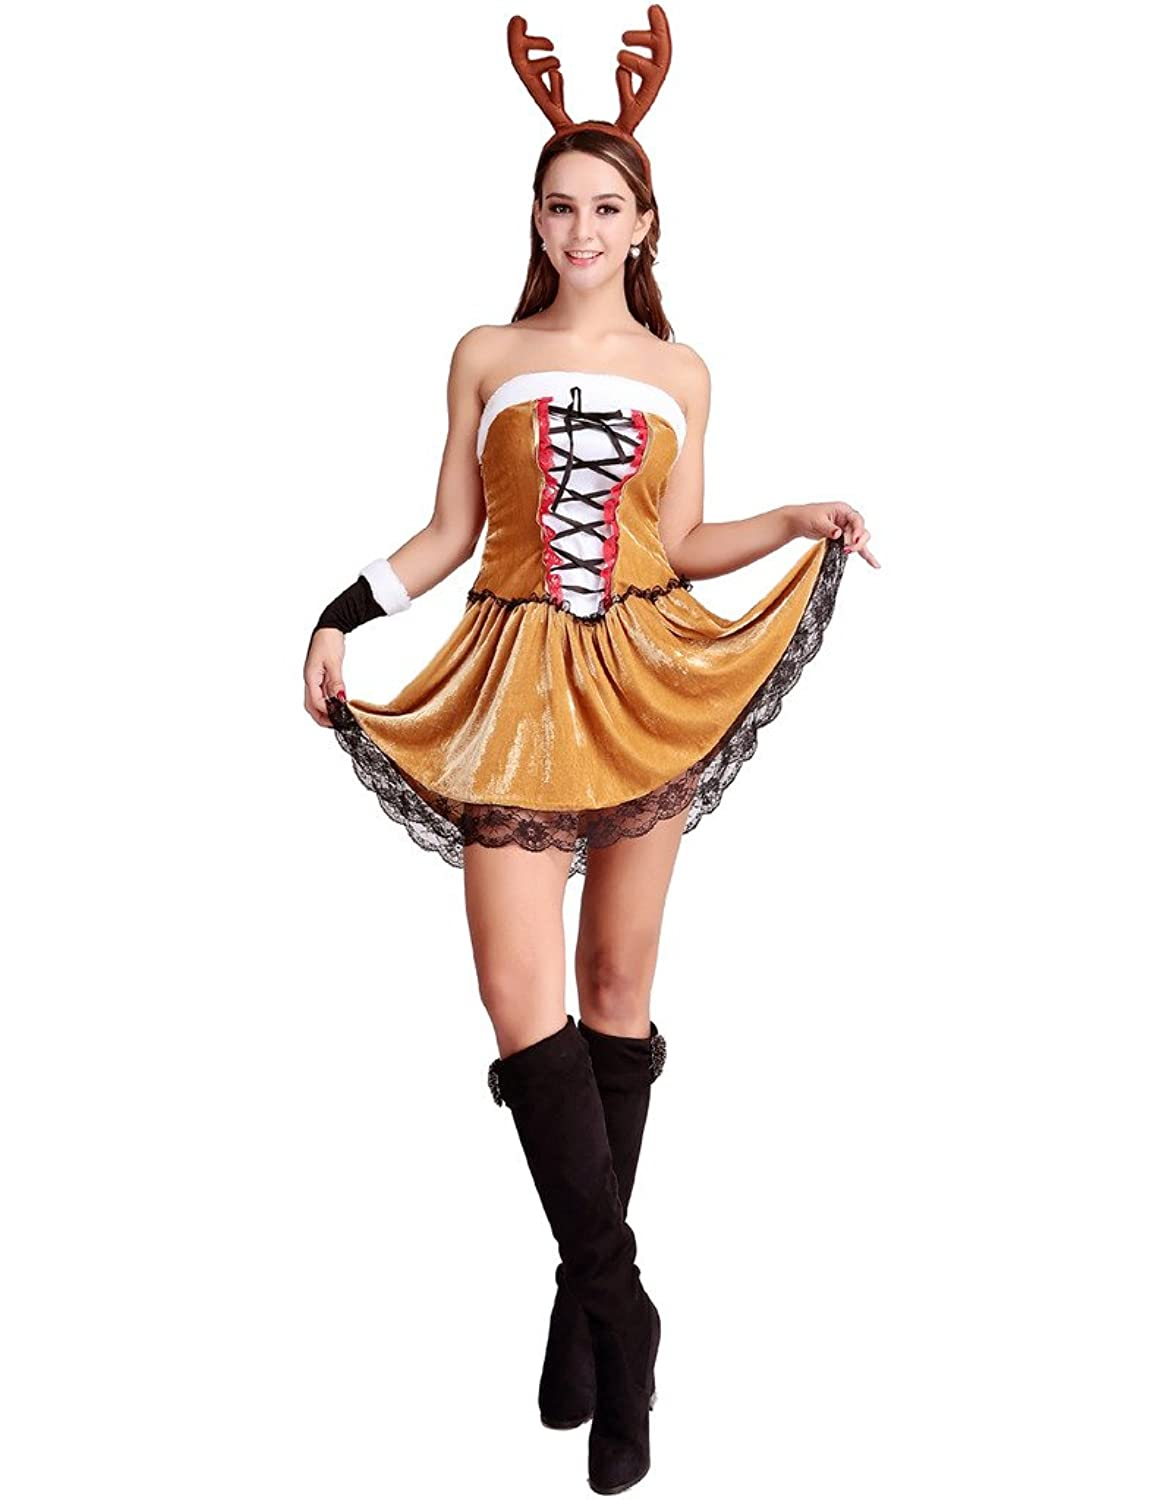 Amazon.com Eternatastic Womenu0027s Christmas Costume Reindeer Lingerie Dress Brown Clothing  sc 1 st  Amazon.com & Amazon.com: Eternatastic Womenu0027s Christmas Costume Reindeer Lingerie ...